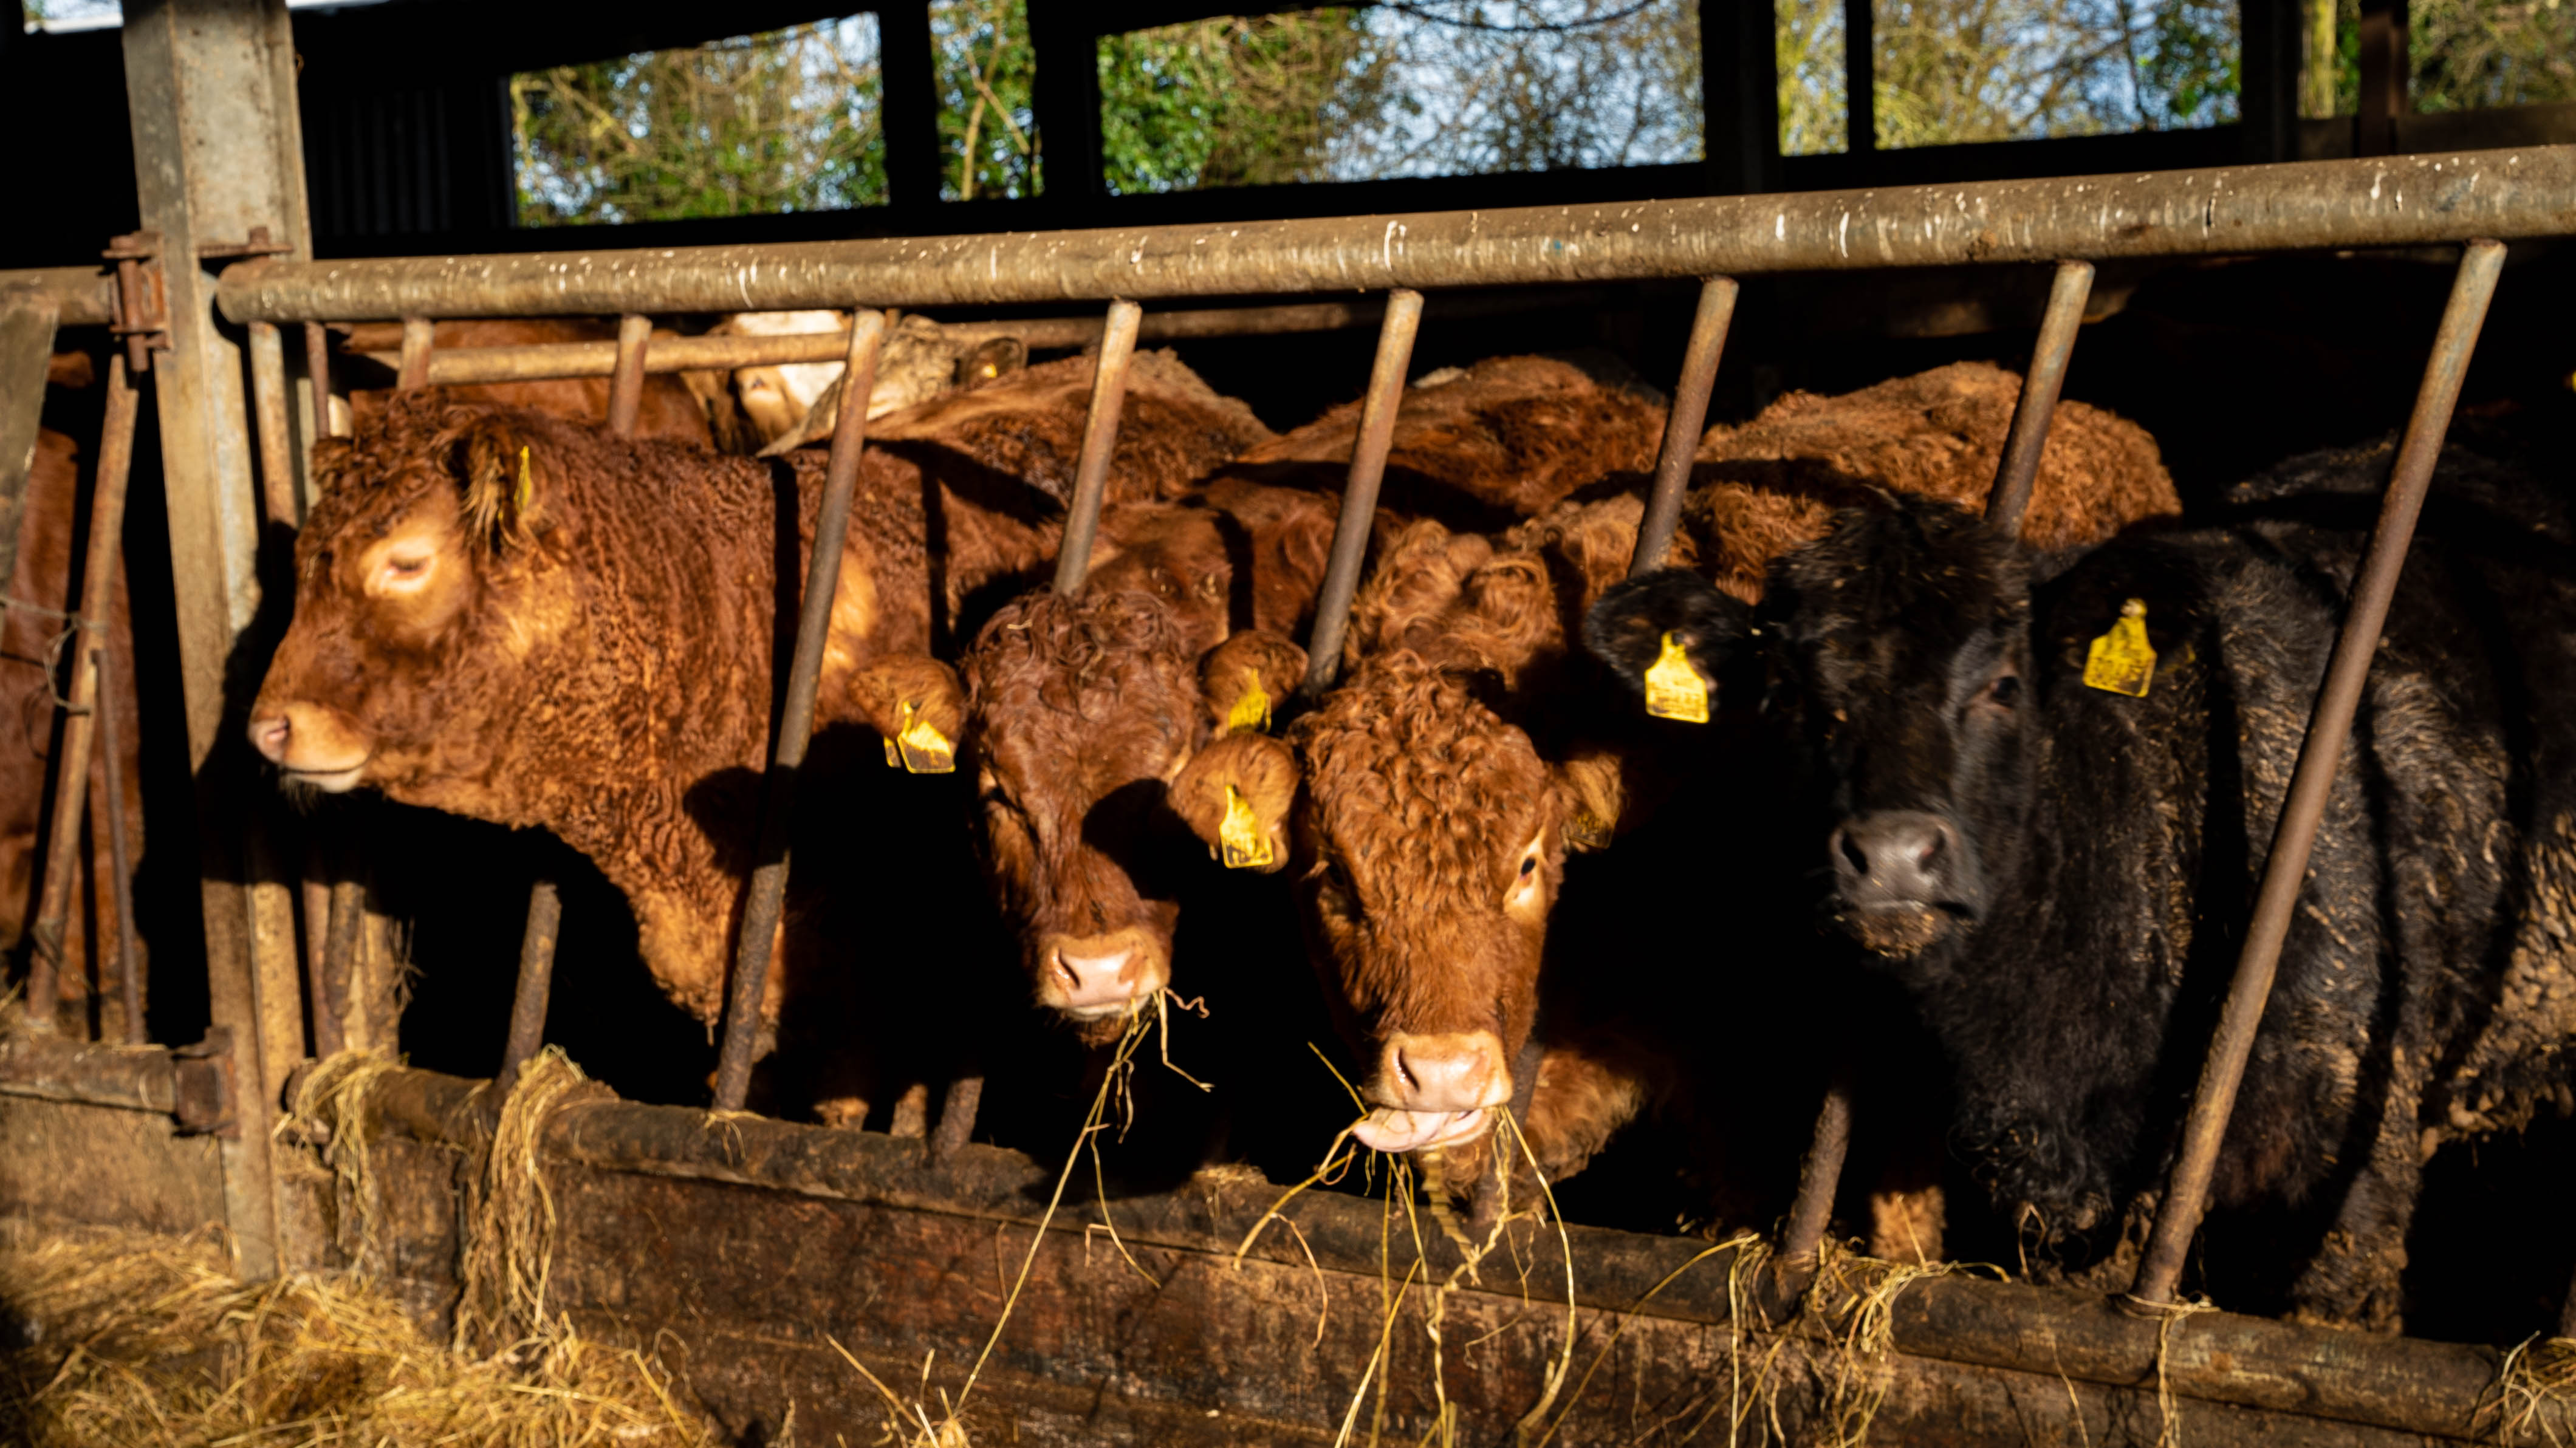 Meeting to be held for beef farmers next week to discuss 'unjustified' prices